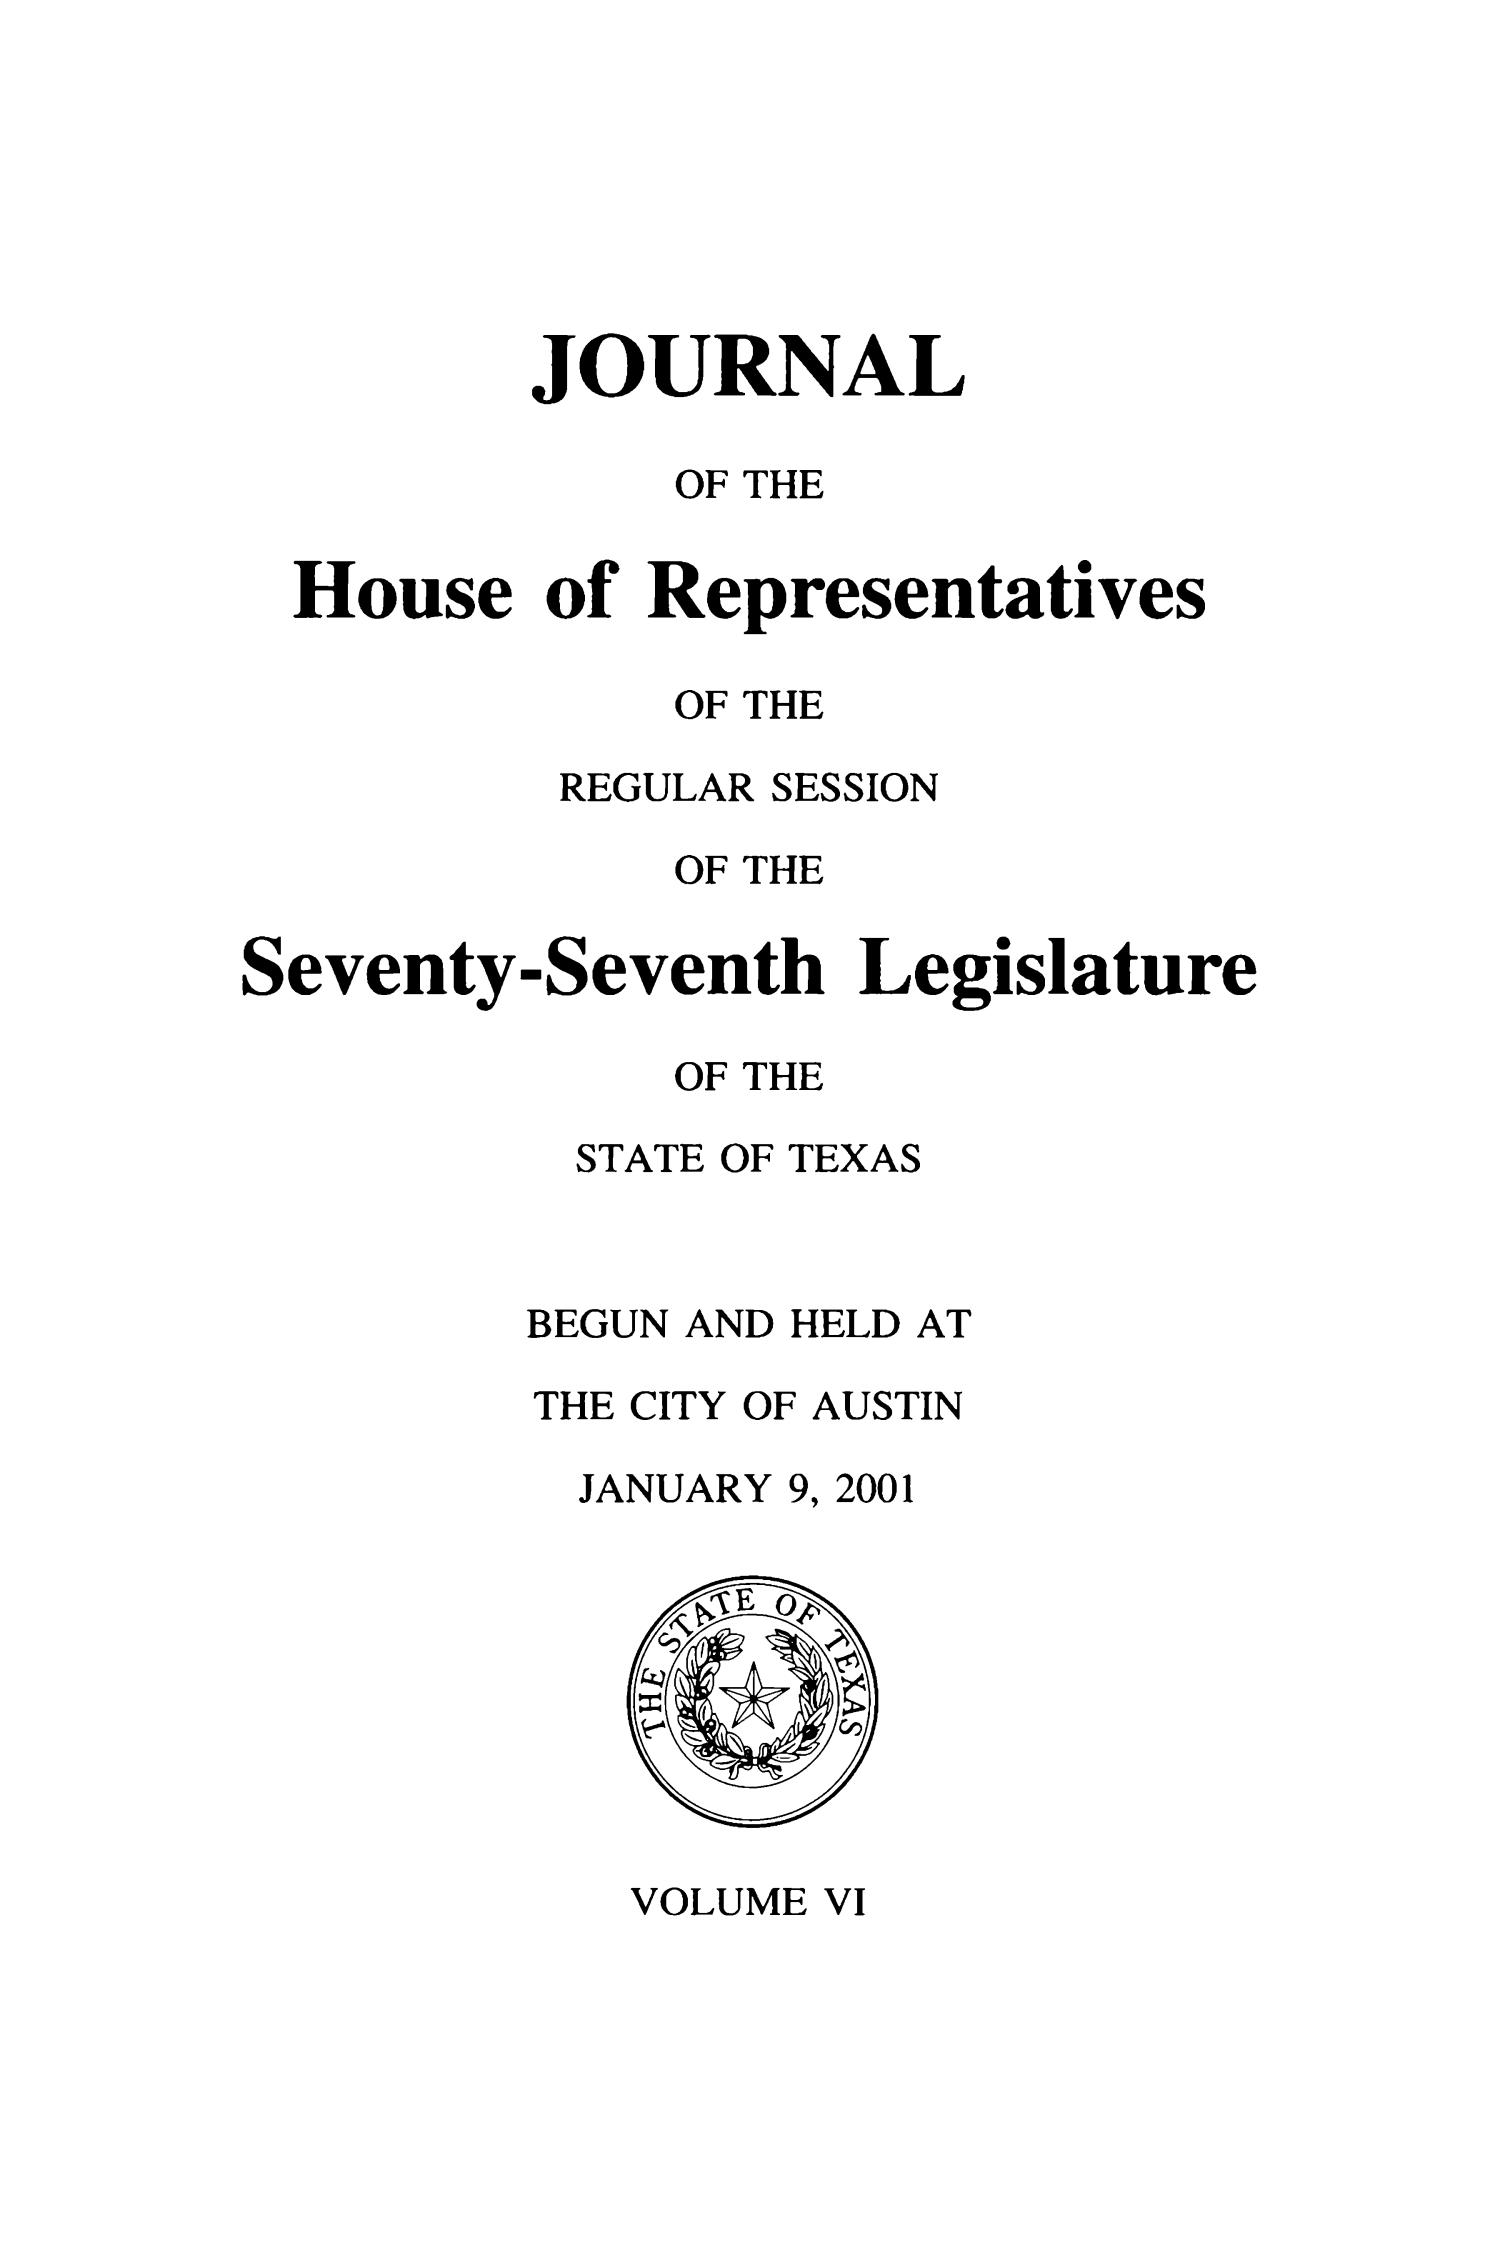 Journal of the House of Representatives of the Regular Session of the Seventy-Seventh Legislature of the State of Texas, Volume 6                                                                                                      Title Page